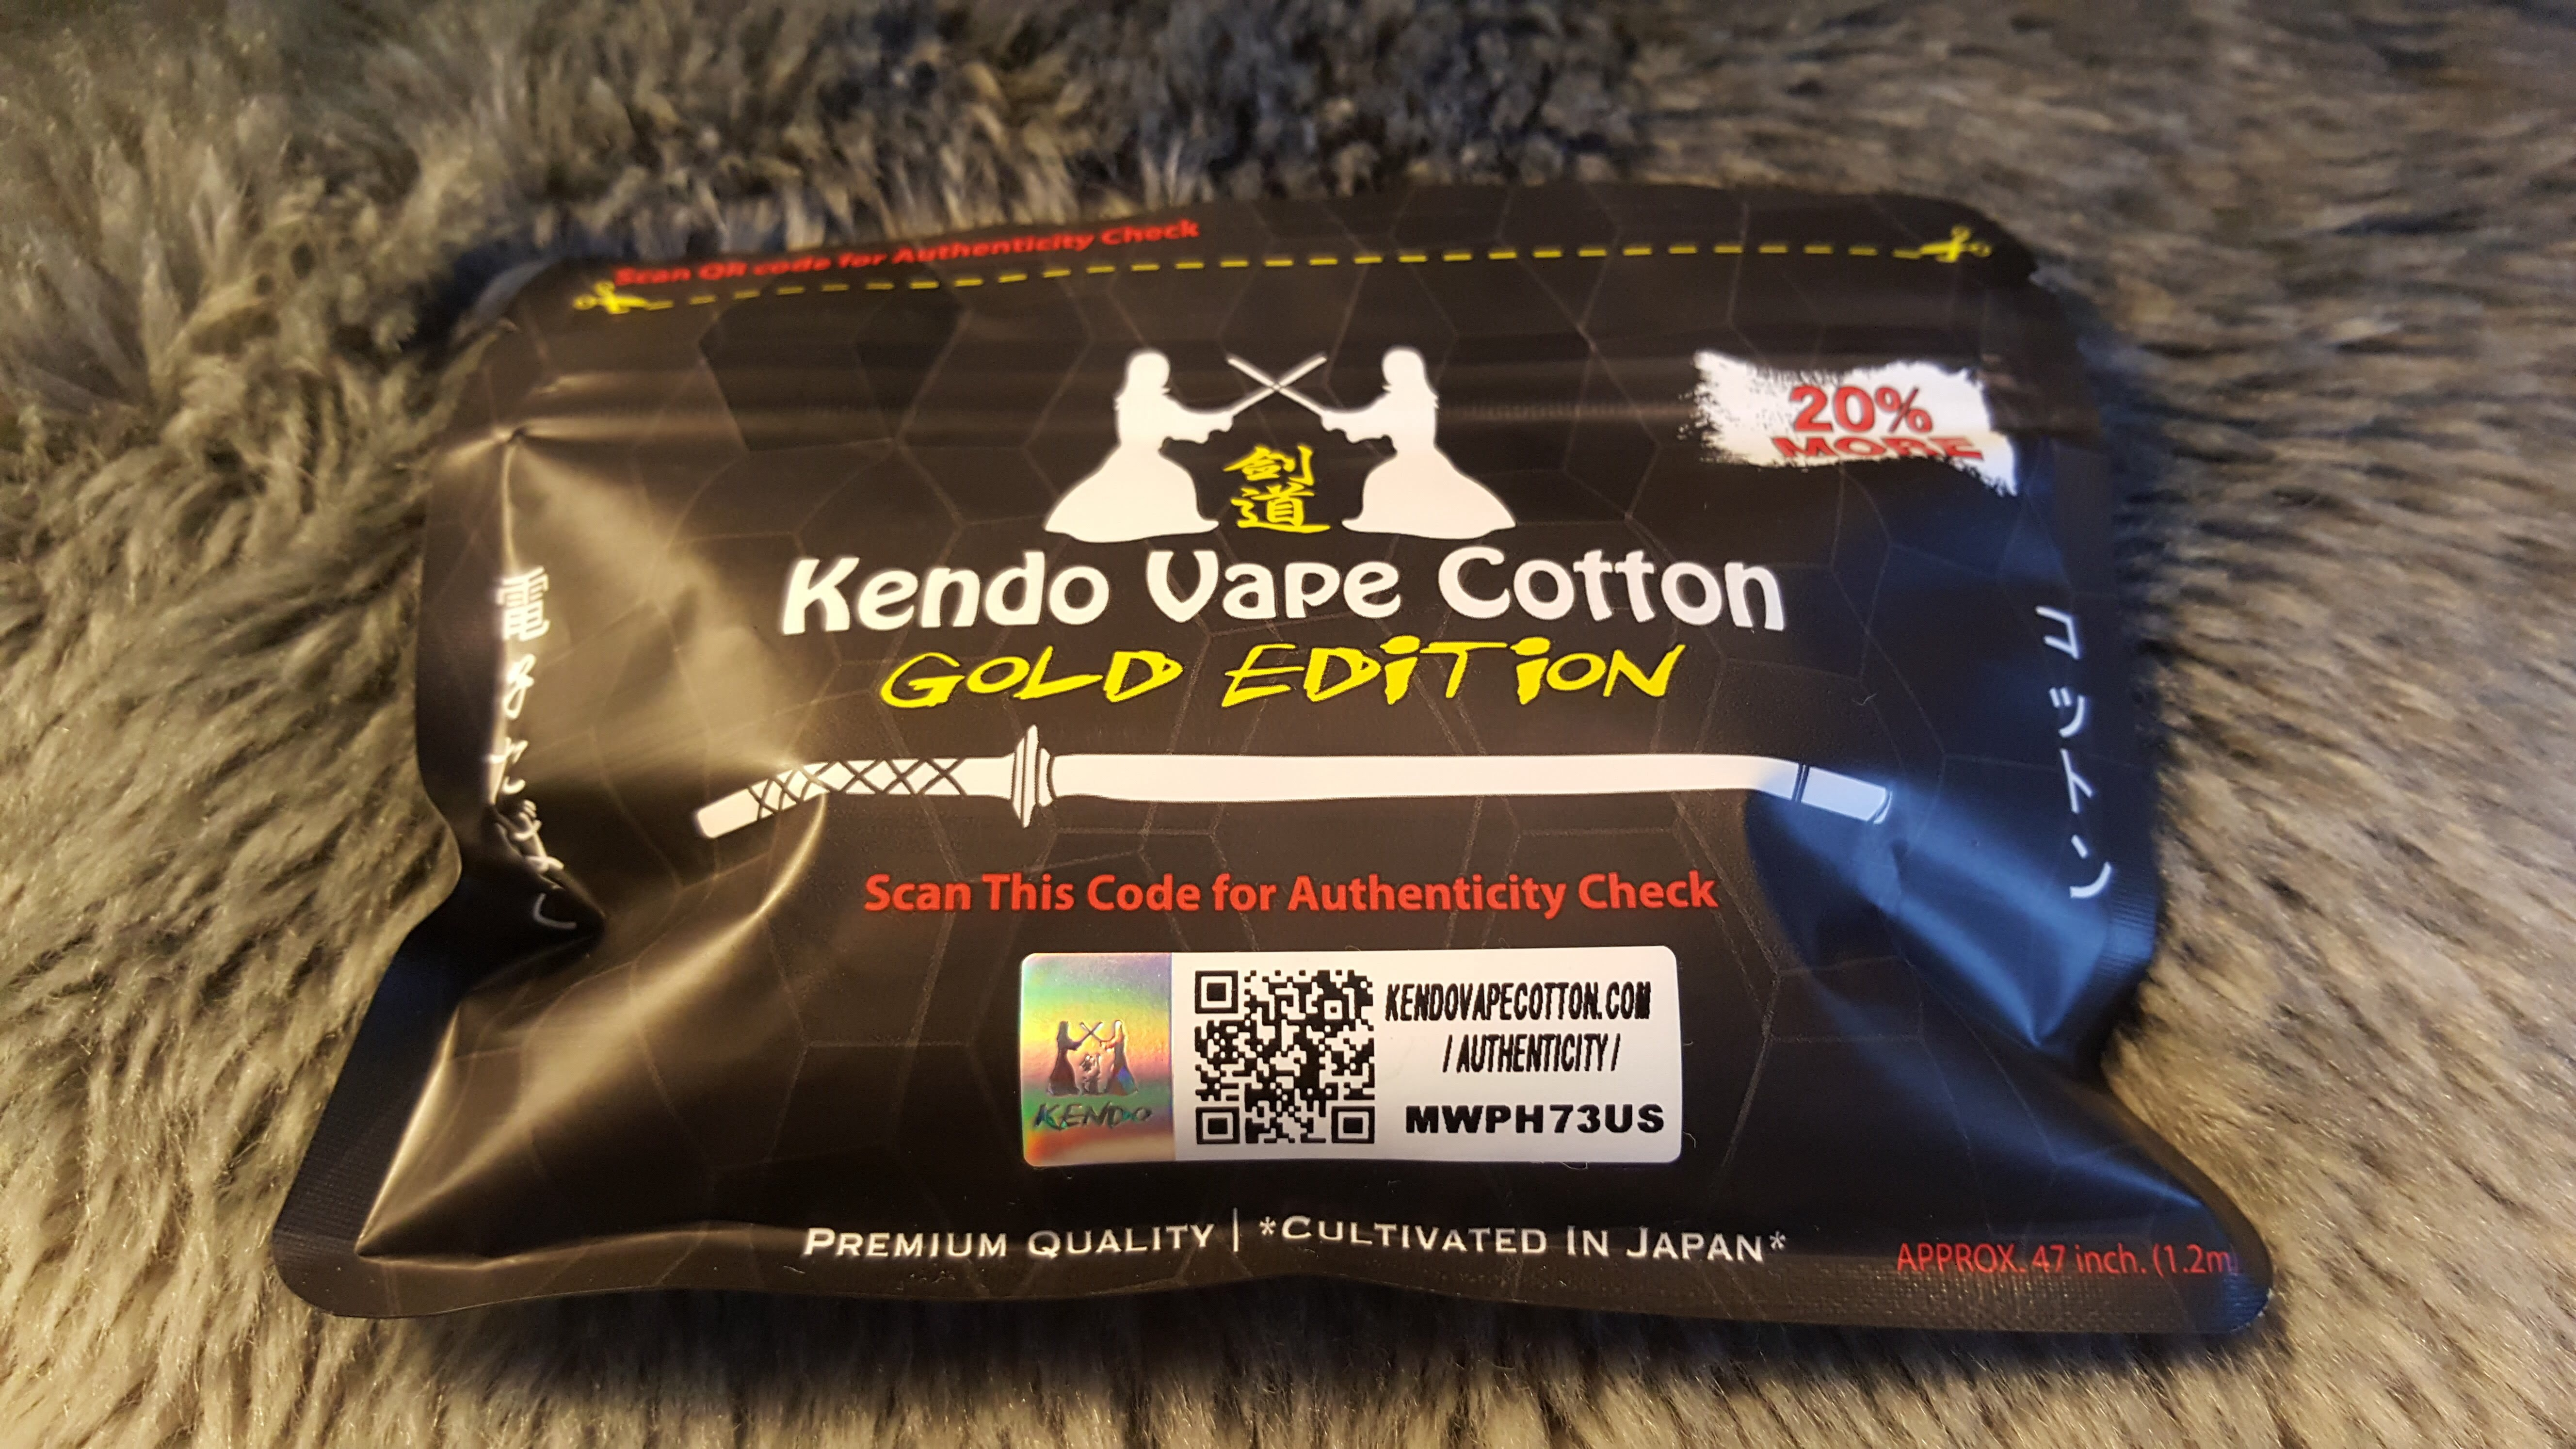 Wicking Cotton Kendo Vape Cotton Gold Edition